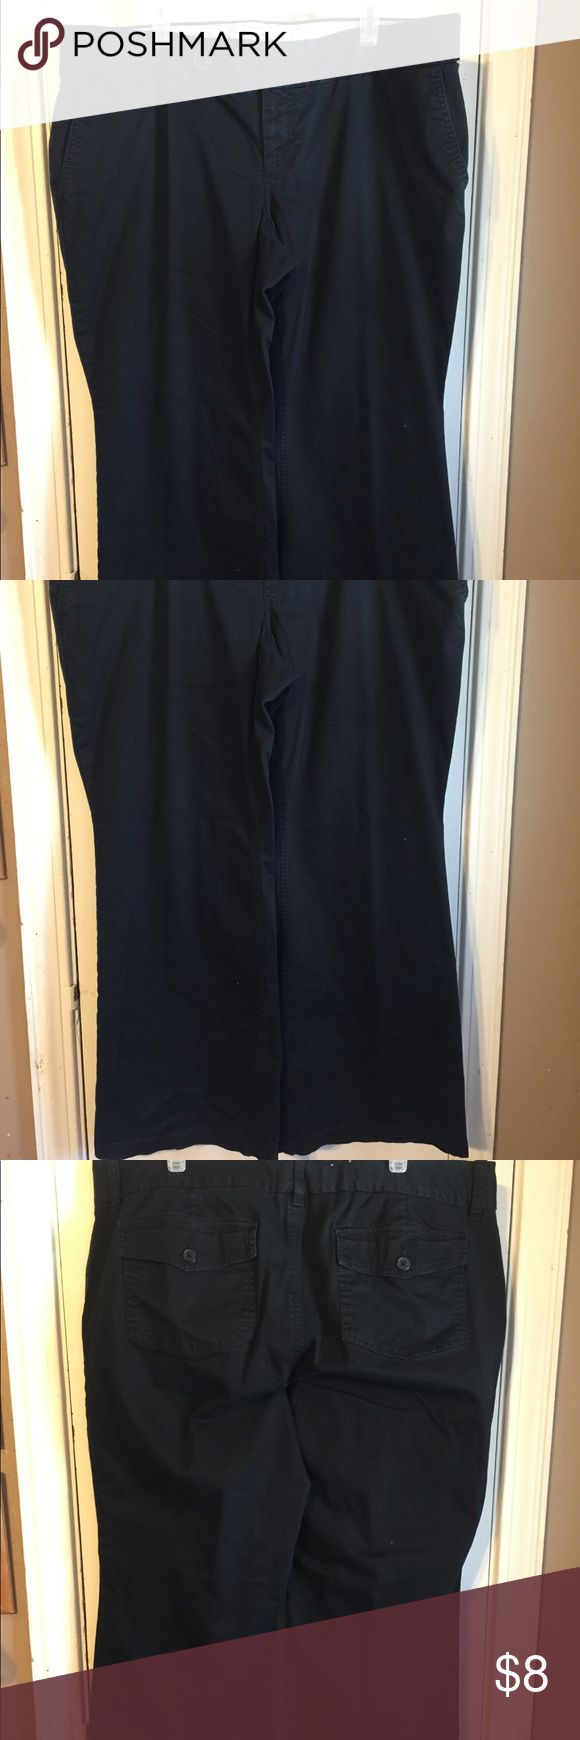 Khaki pants by Old Navy size 20 From on line plus size black khakis cotton spandex in very good condition Old Navy Pants Trousers